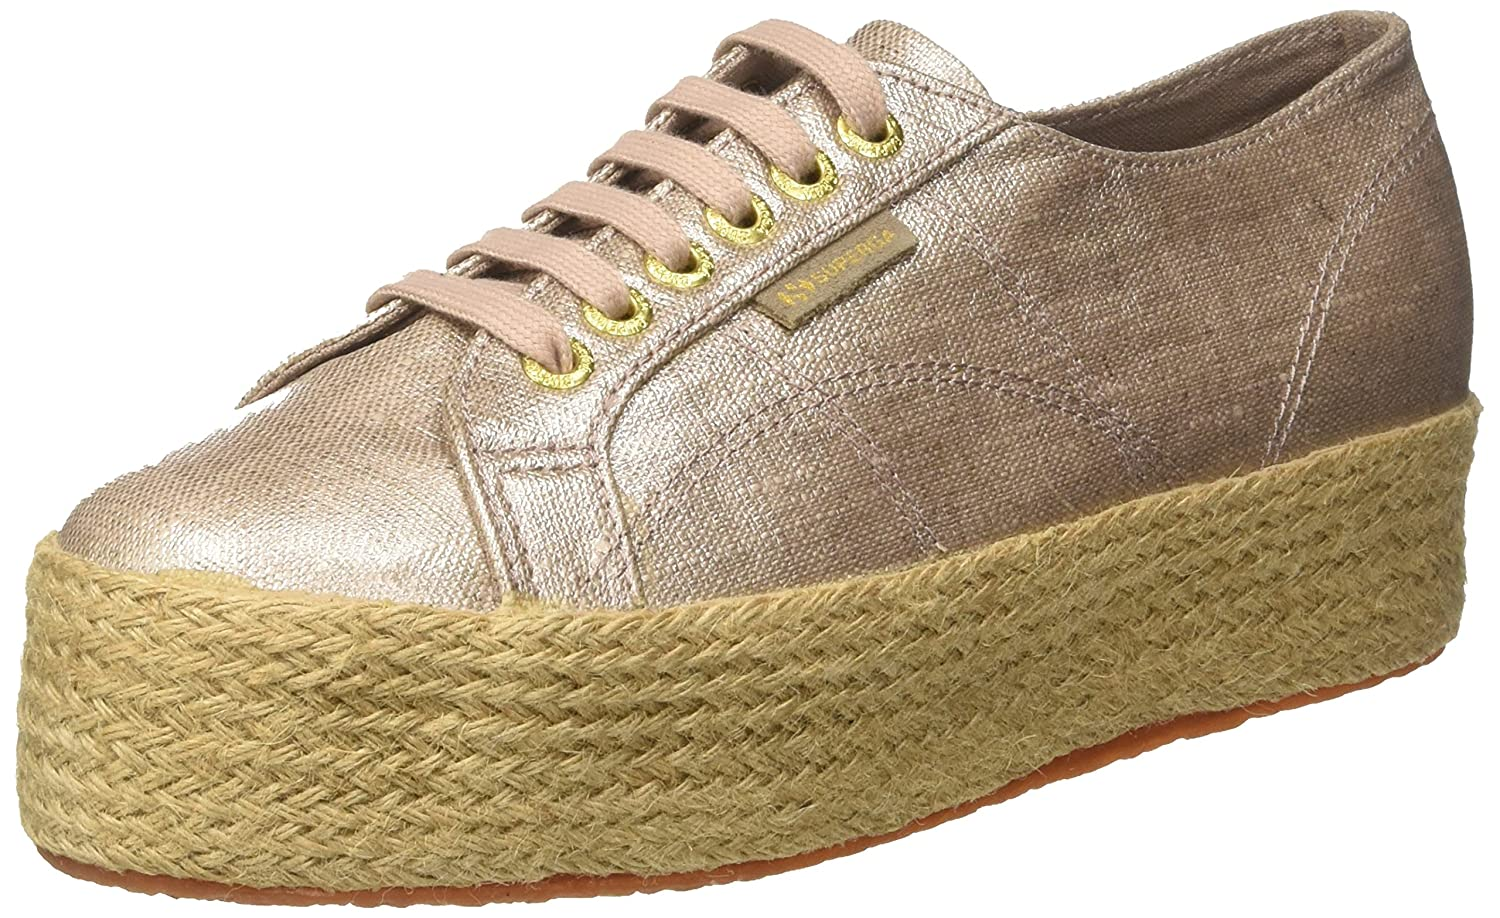 Superga Unisex-Erwachsene 2790 Linrbrropew Low-top Sand